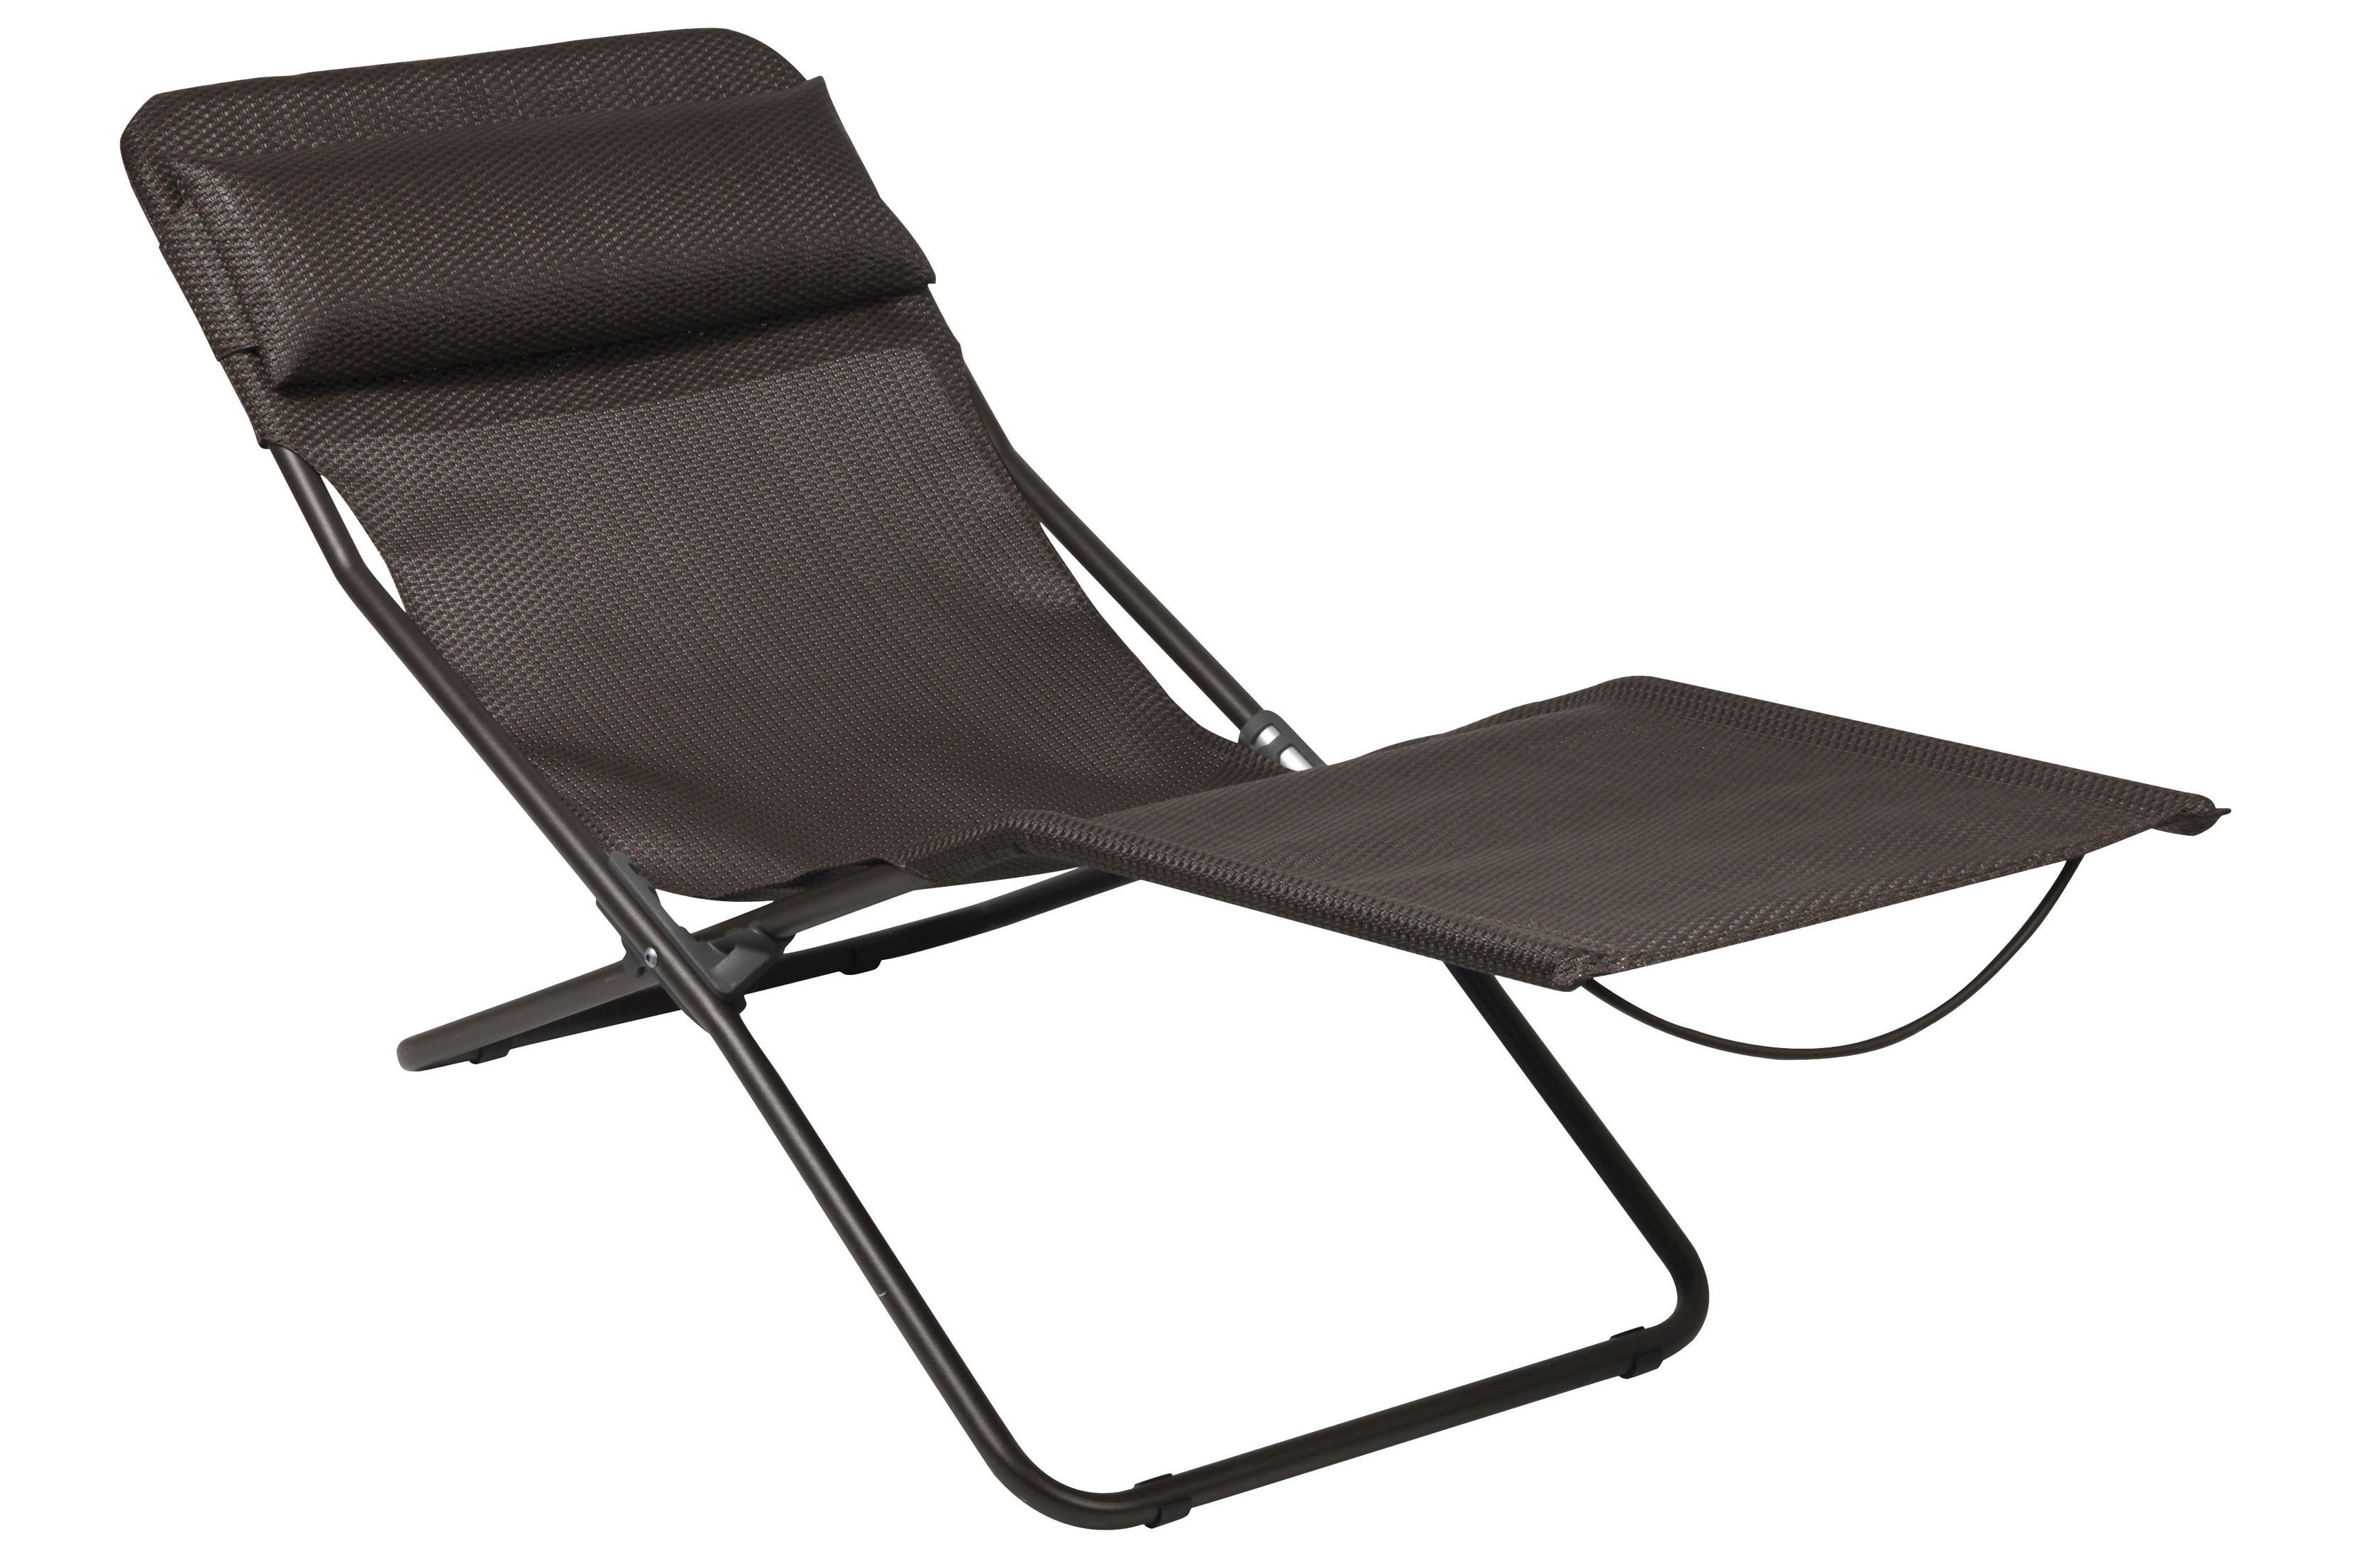 Transalounge Xl Plus Sun Lounger Foldable Moka By Lafuma